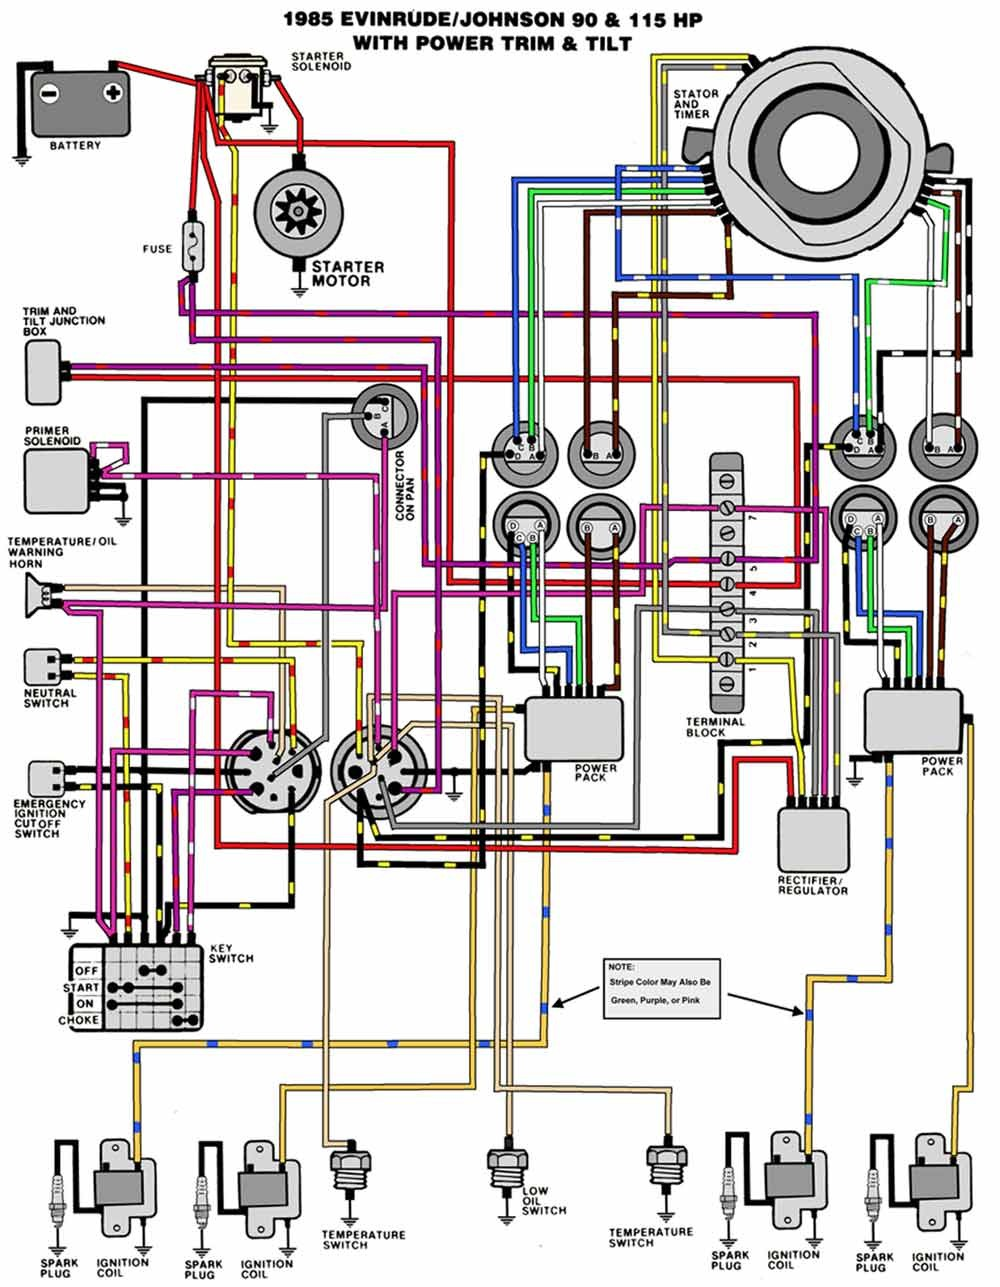 wiring diagram johnson 50 hp outboard wiring diagram site Universal Remote Control Schematics